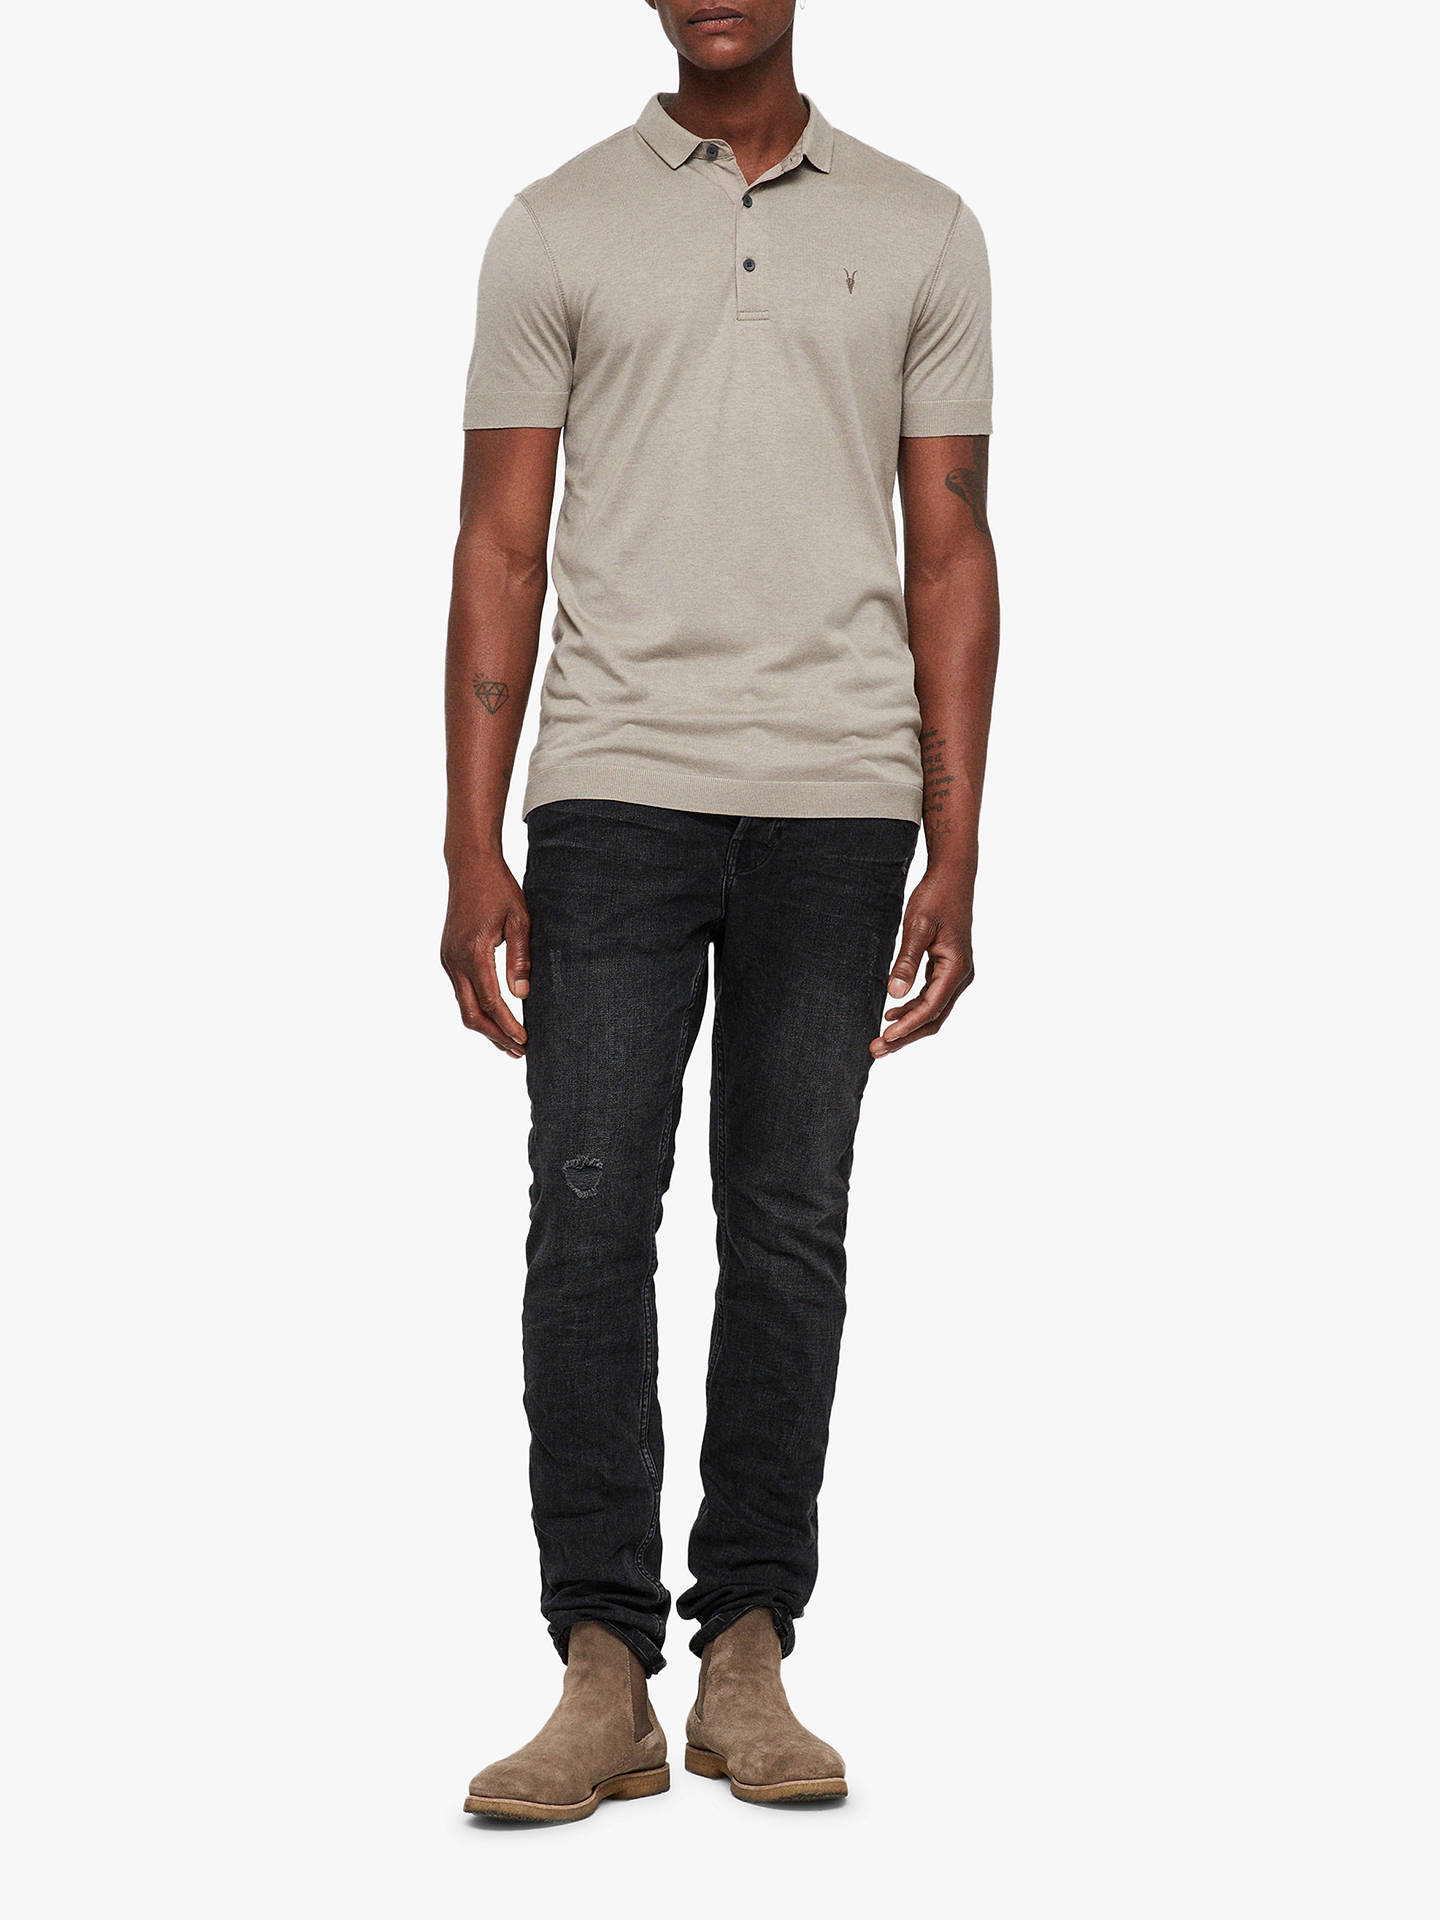 BuyAllSaints Parlour Short Sleeve Polo Shirt, Mine Grey, XS Online at johnlewis.com